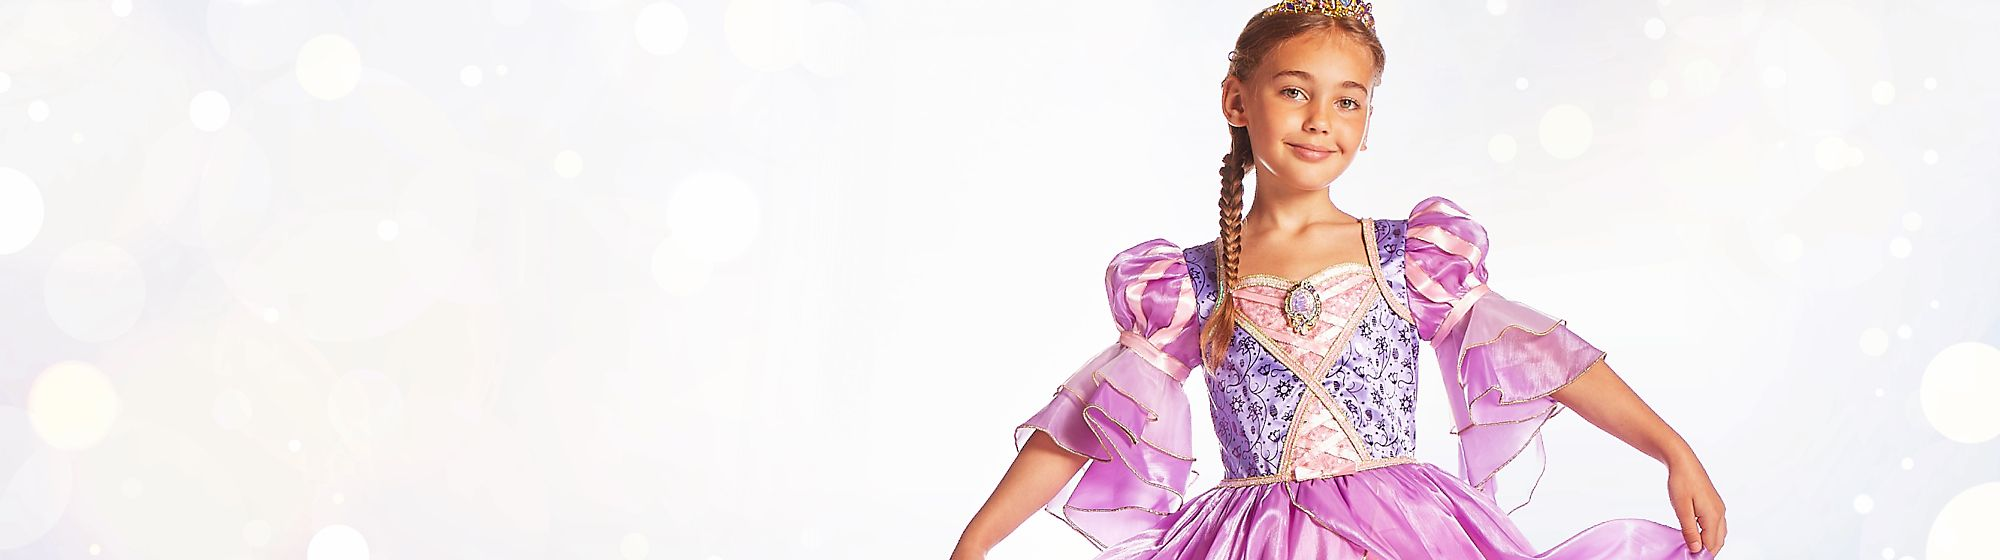 Rapunzel Let Your Hair Down! Celebrating 10 years, we bring you our wonderful Tangled collection